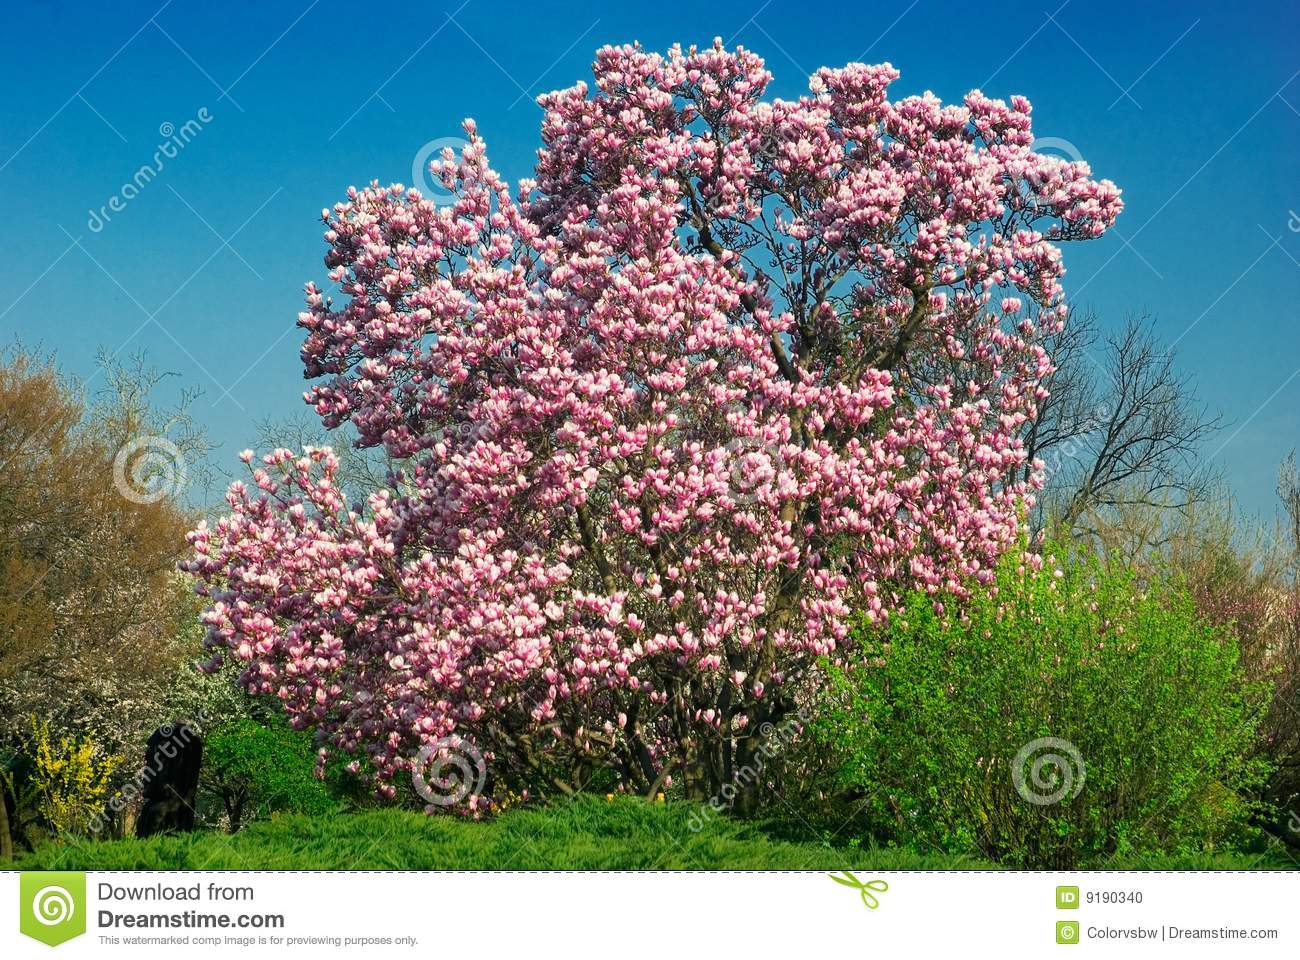 blooming magnolia tree in april stock photo image of botany background 9190340. Black Bedroom Furniture Sets. Home Design Ideas